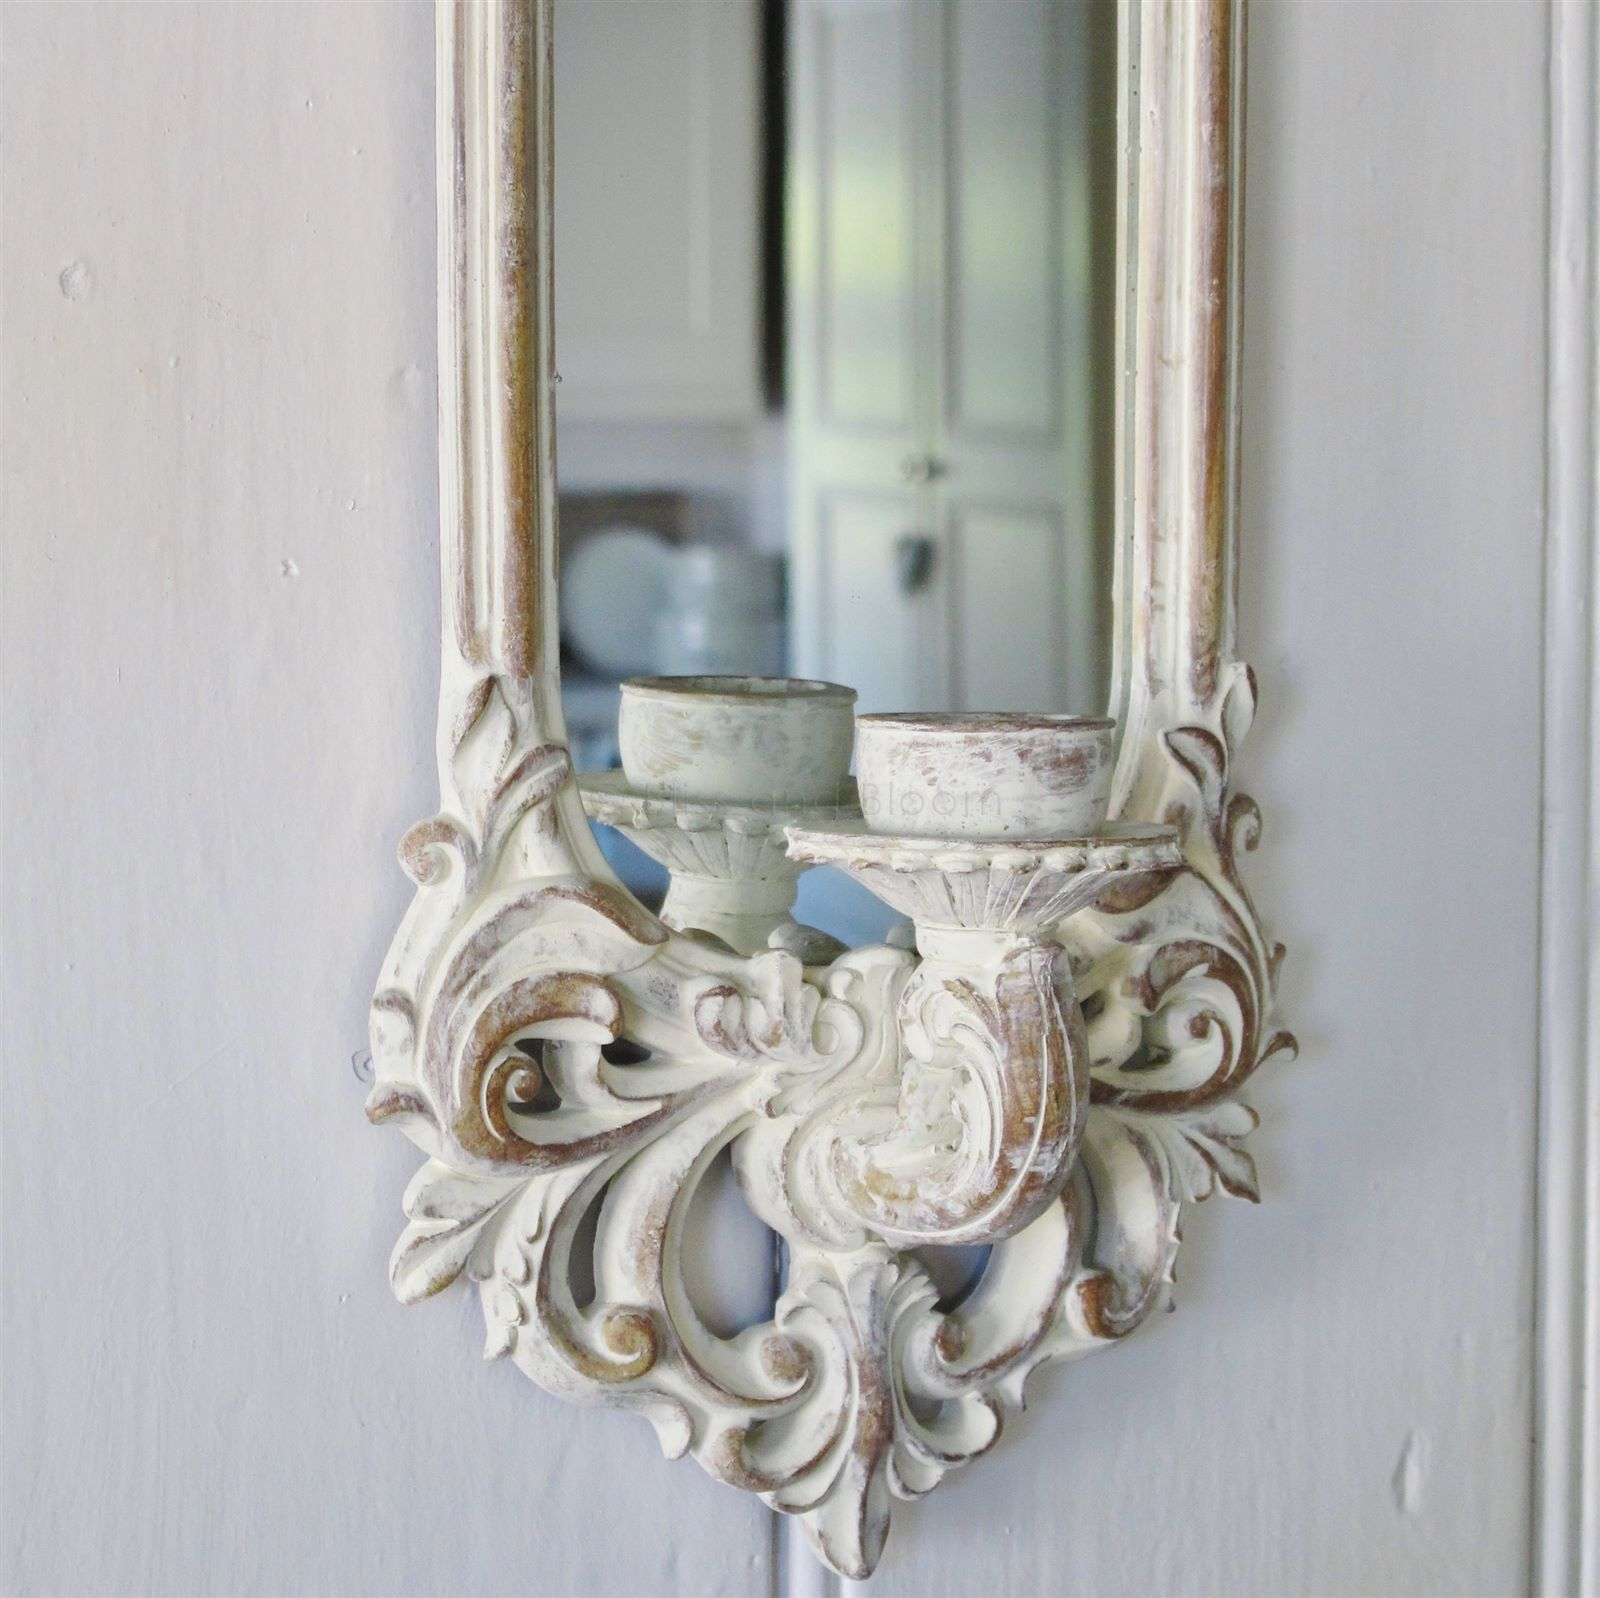 Mirror Candle Wall Sconce Bliss and Bloom Ltd